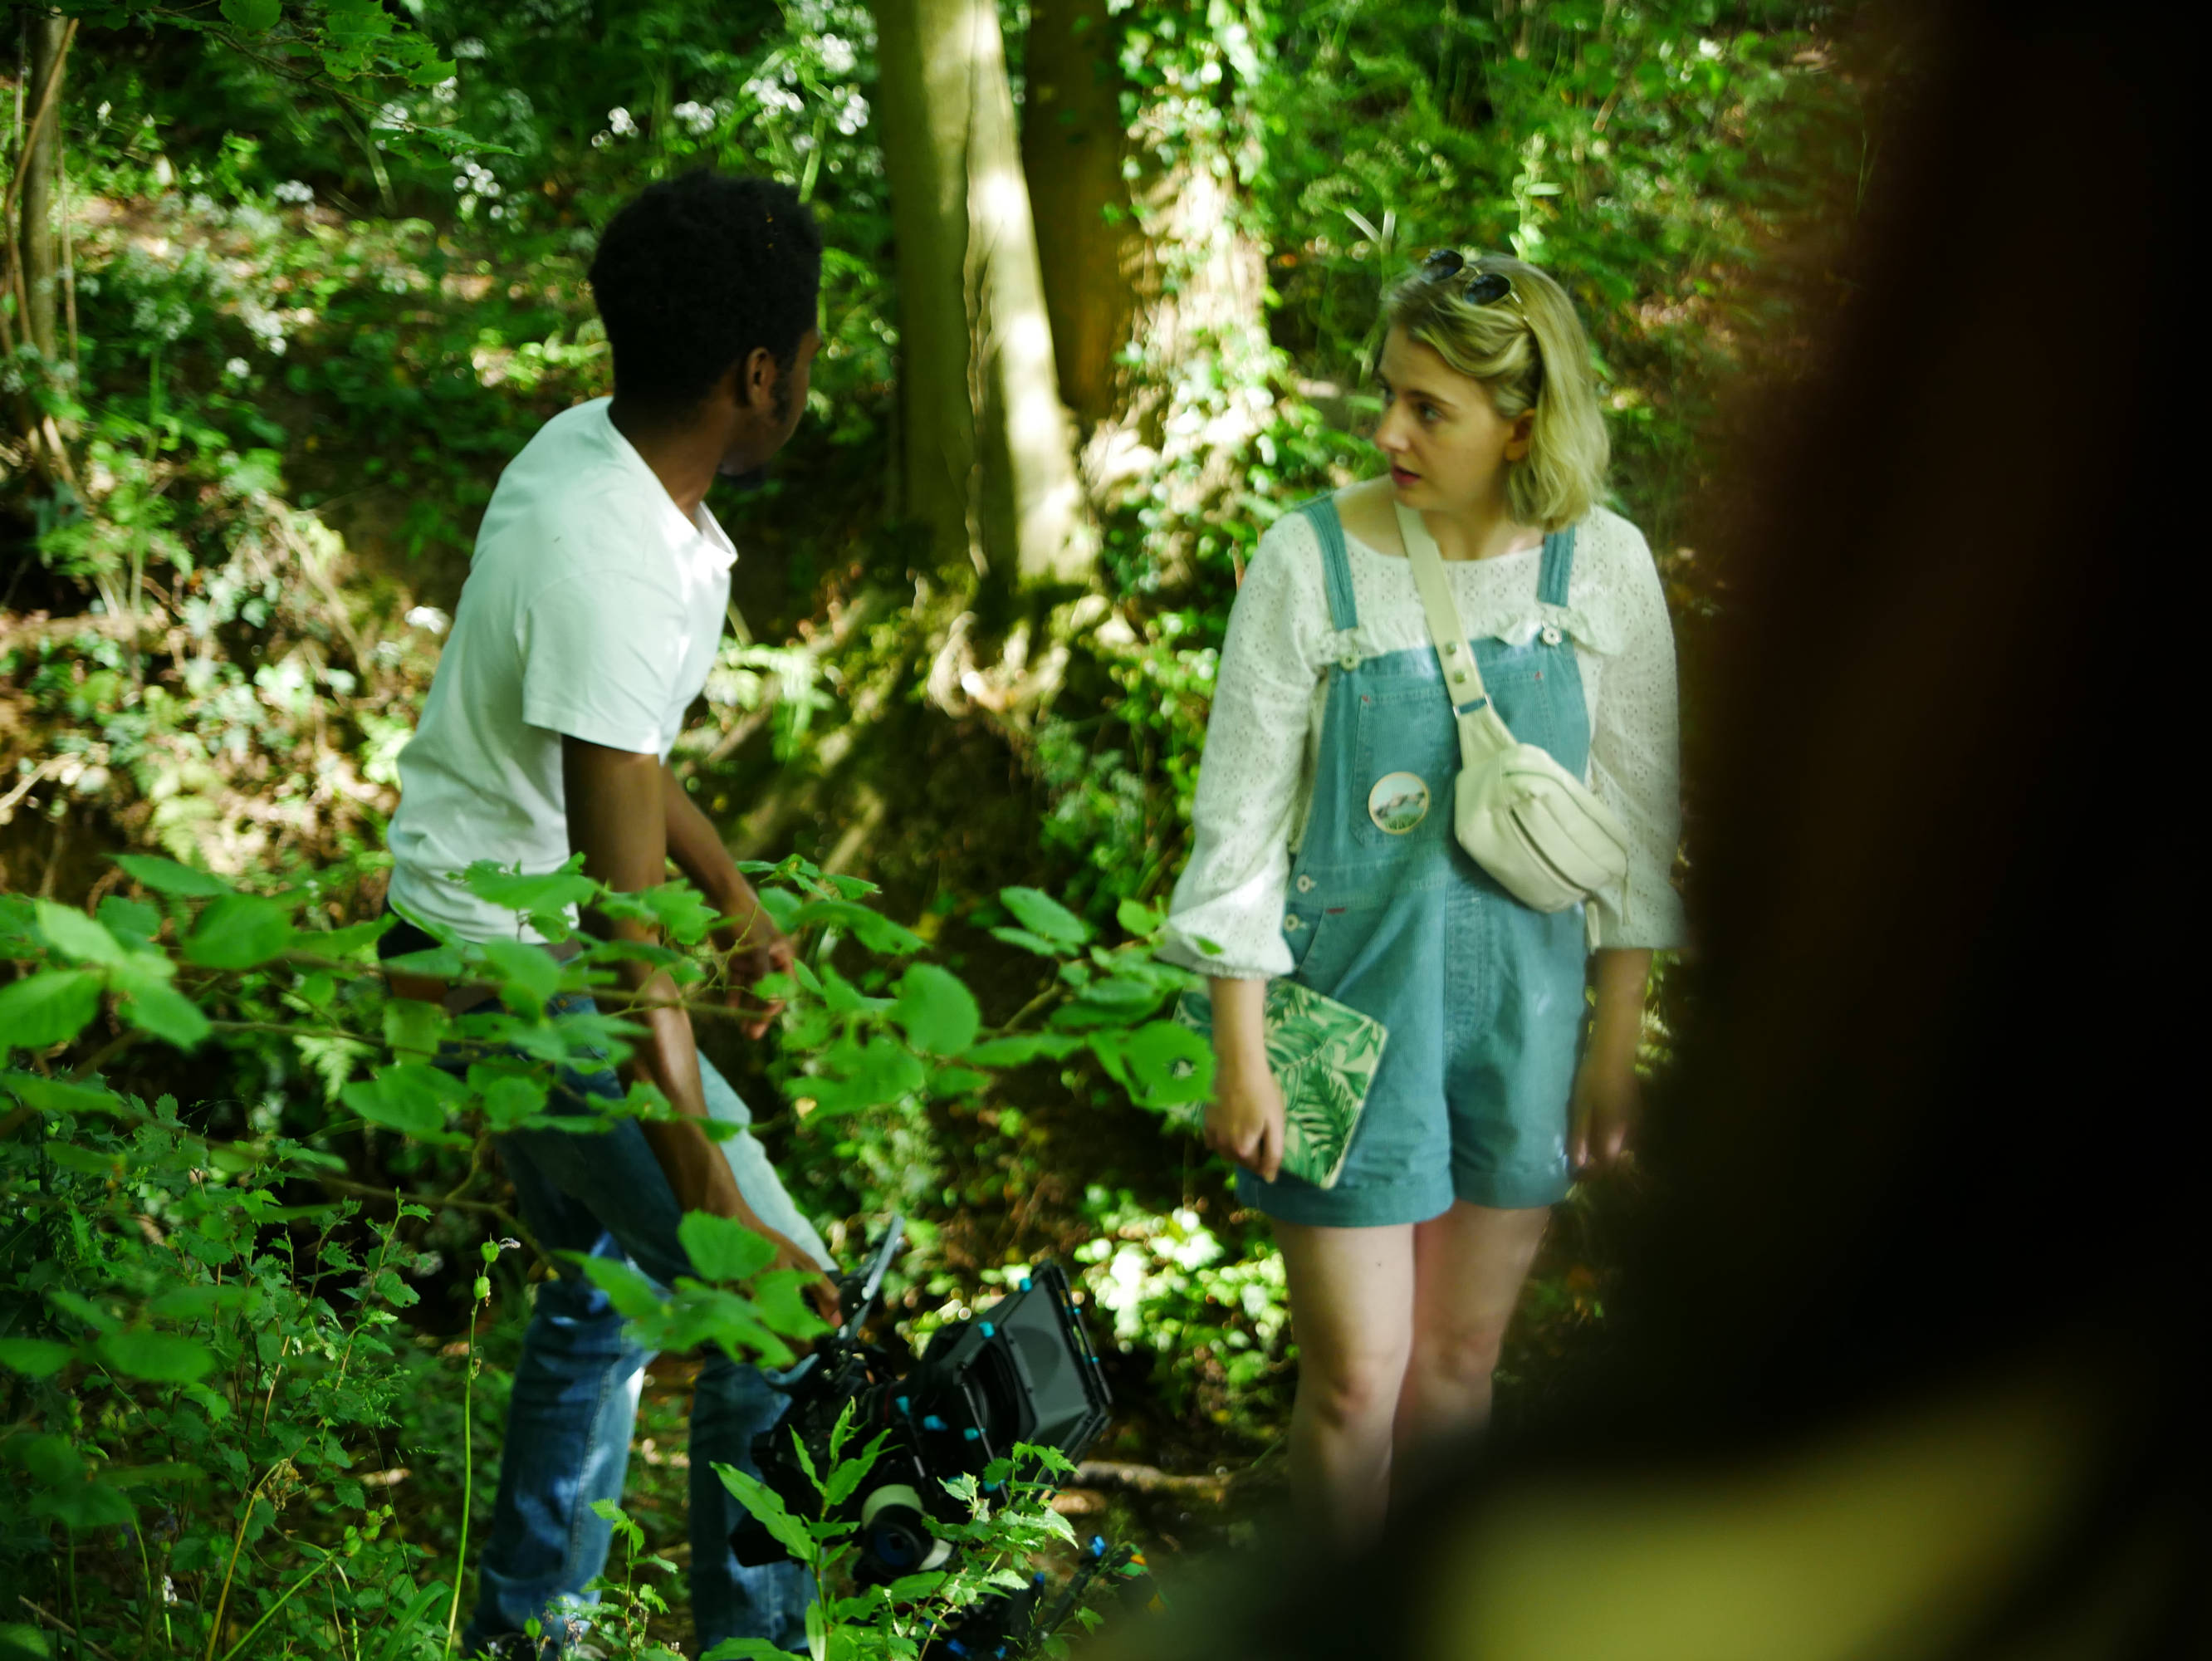 Behind the scenes photo of Director Chloe Kennedy and Director of Photography Matthias Djan deliberating on set